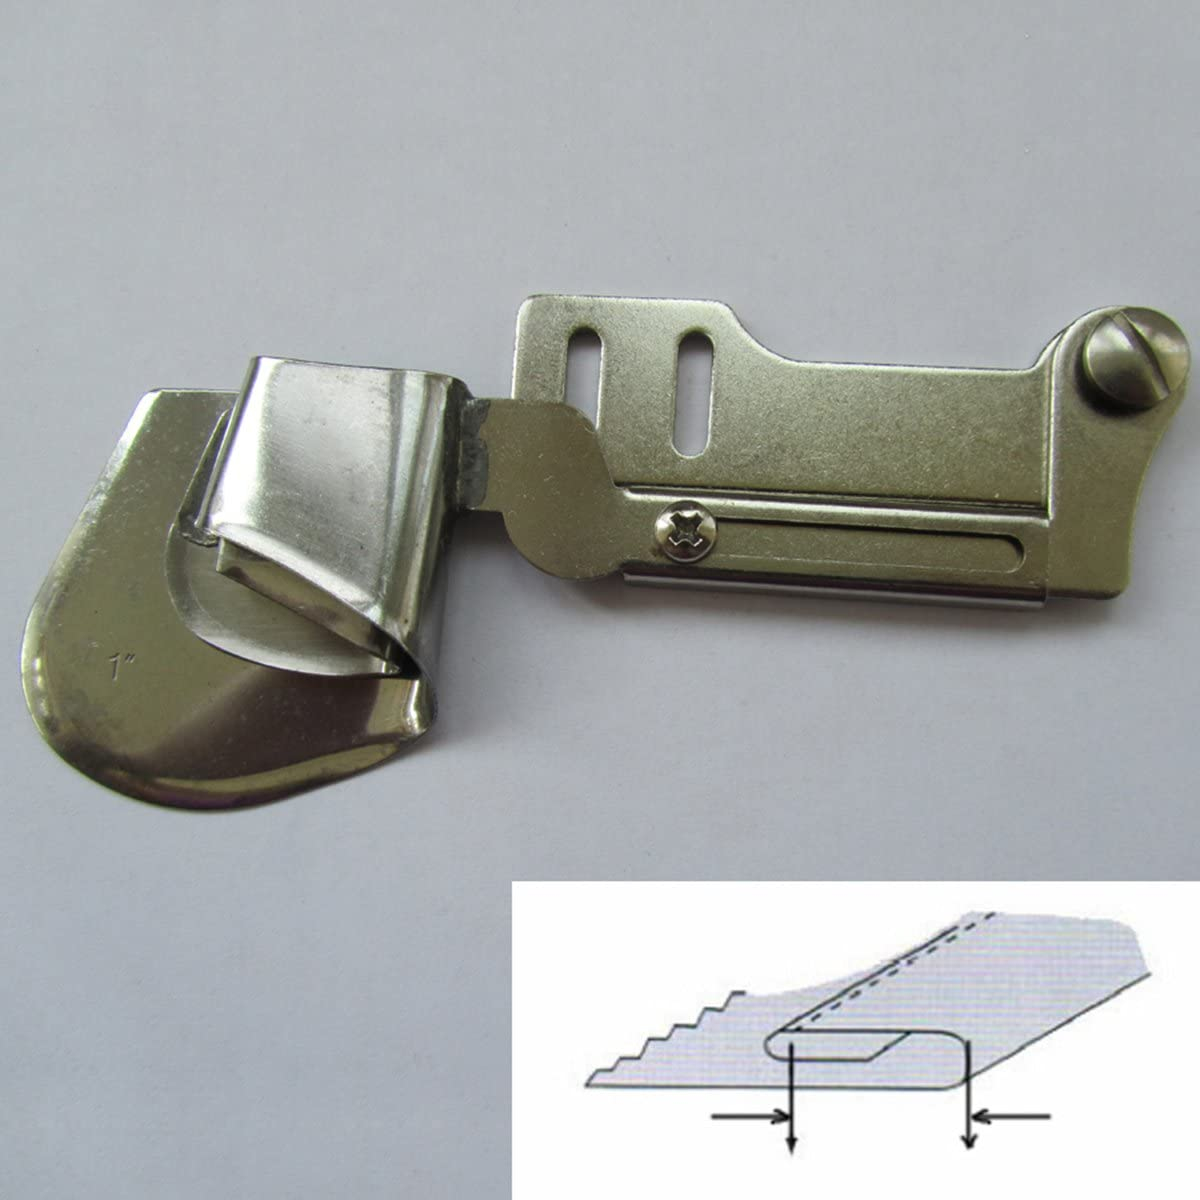 ckpsms Brand - #KL-51 1PCS Hemmer fit for Most Industrial Single Needle Sewing Machines (1/2